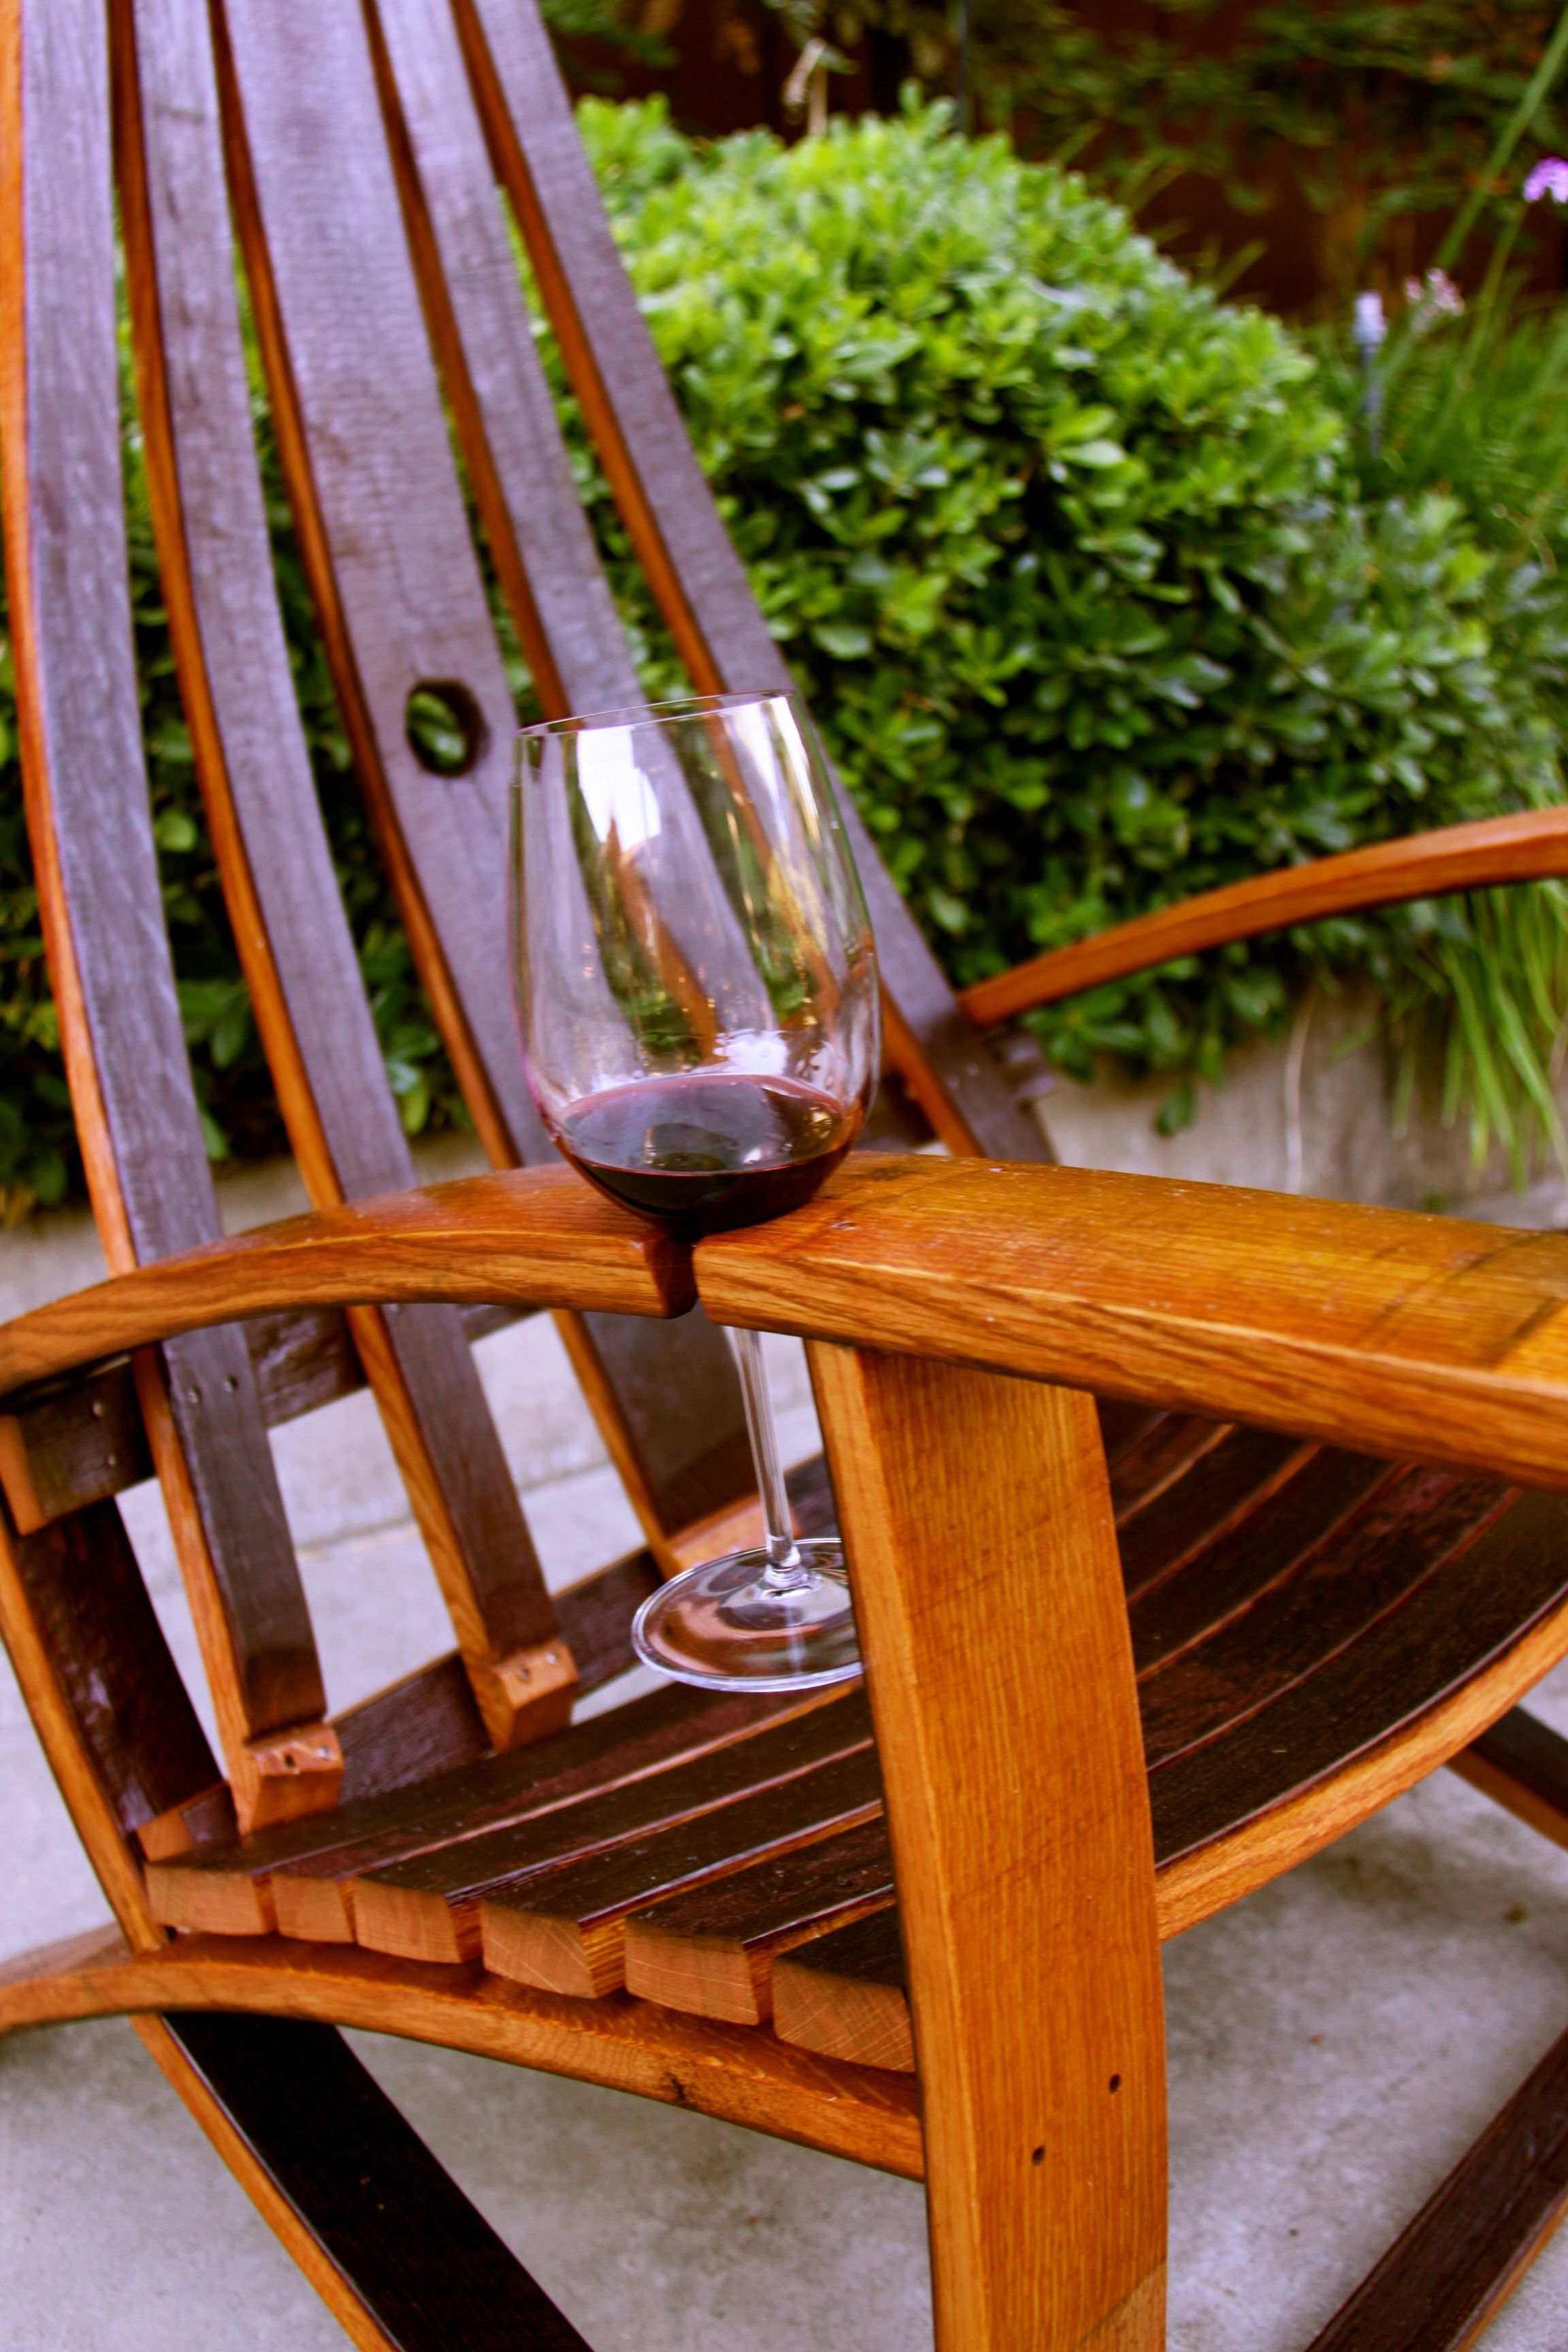 Wine-holding chairs... A must have!